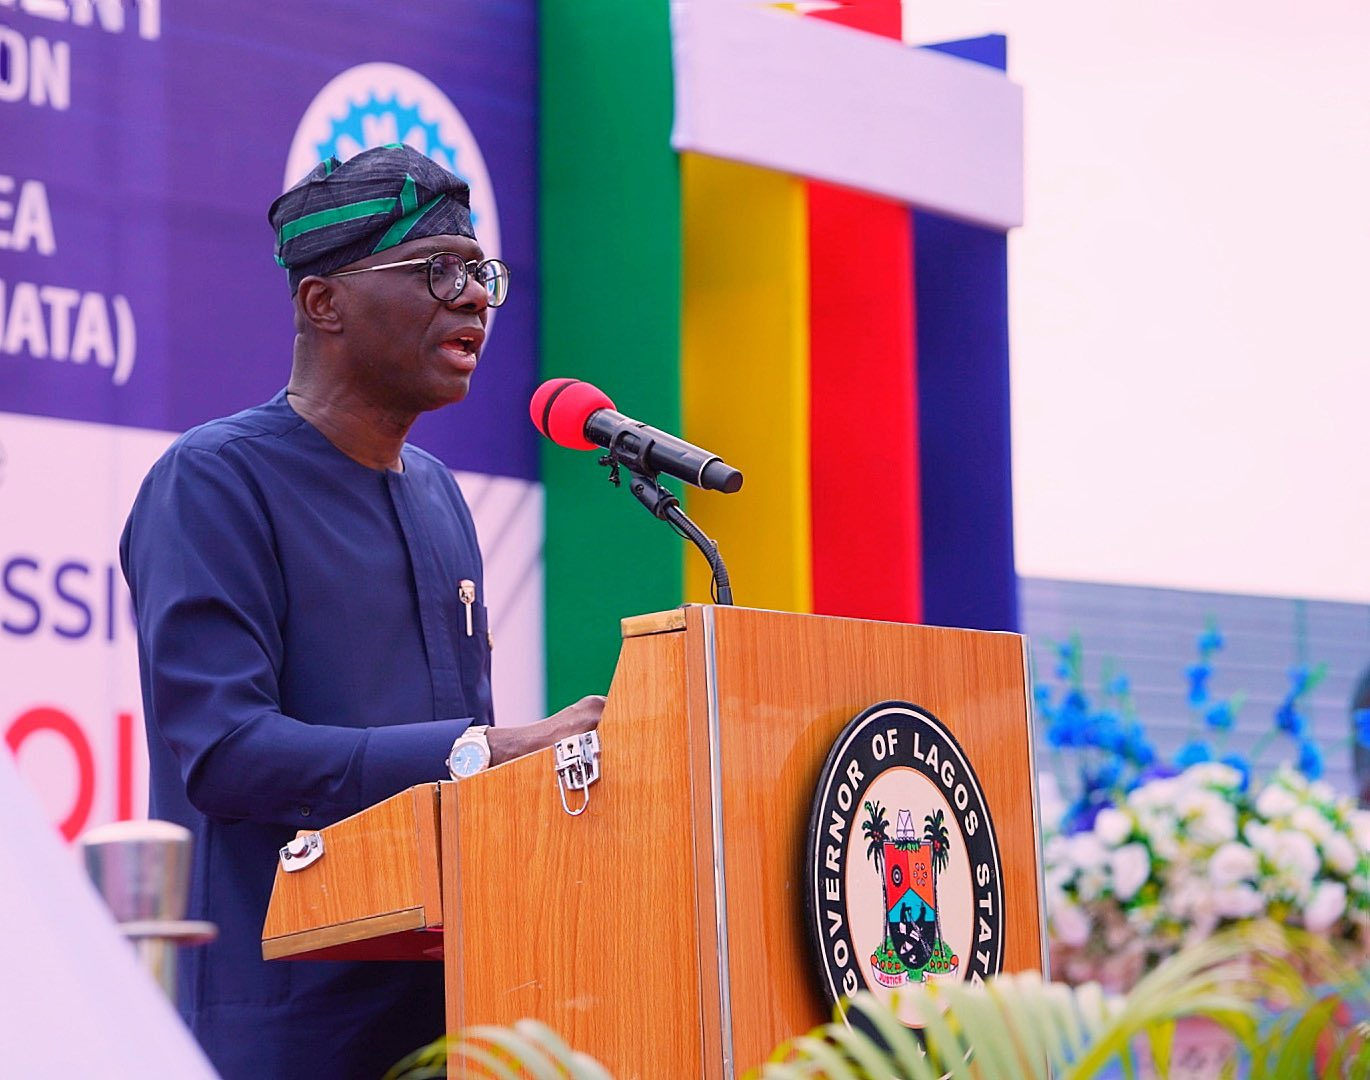 Governor of Lagos State